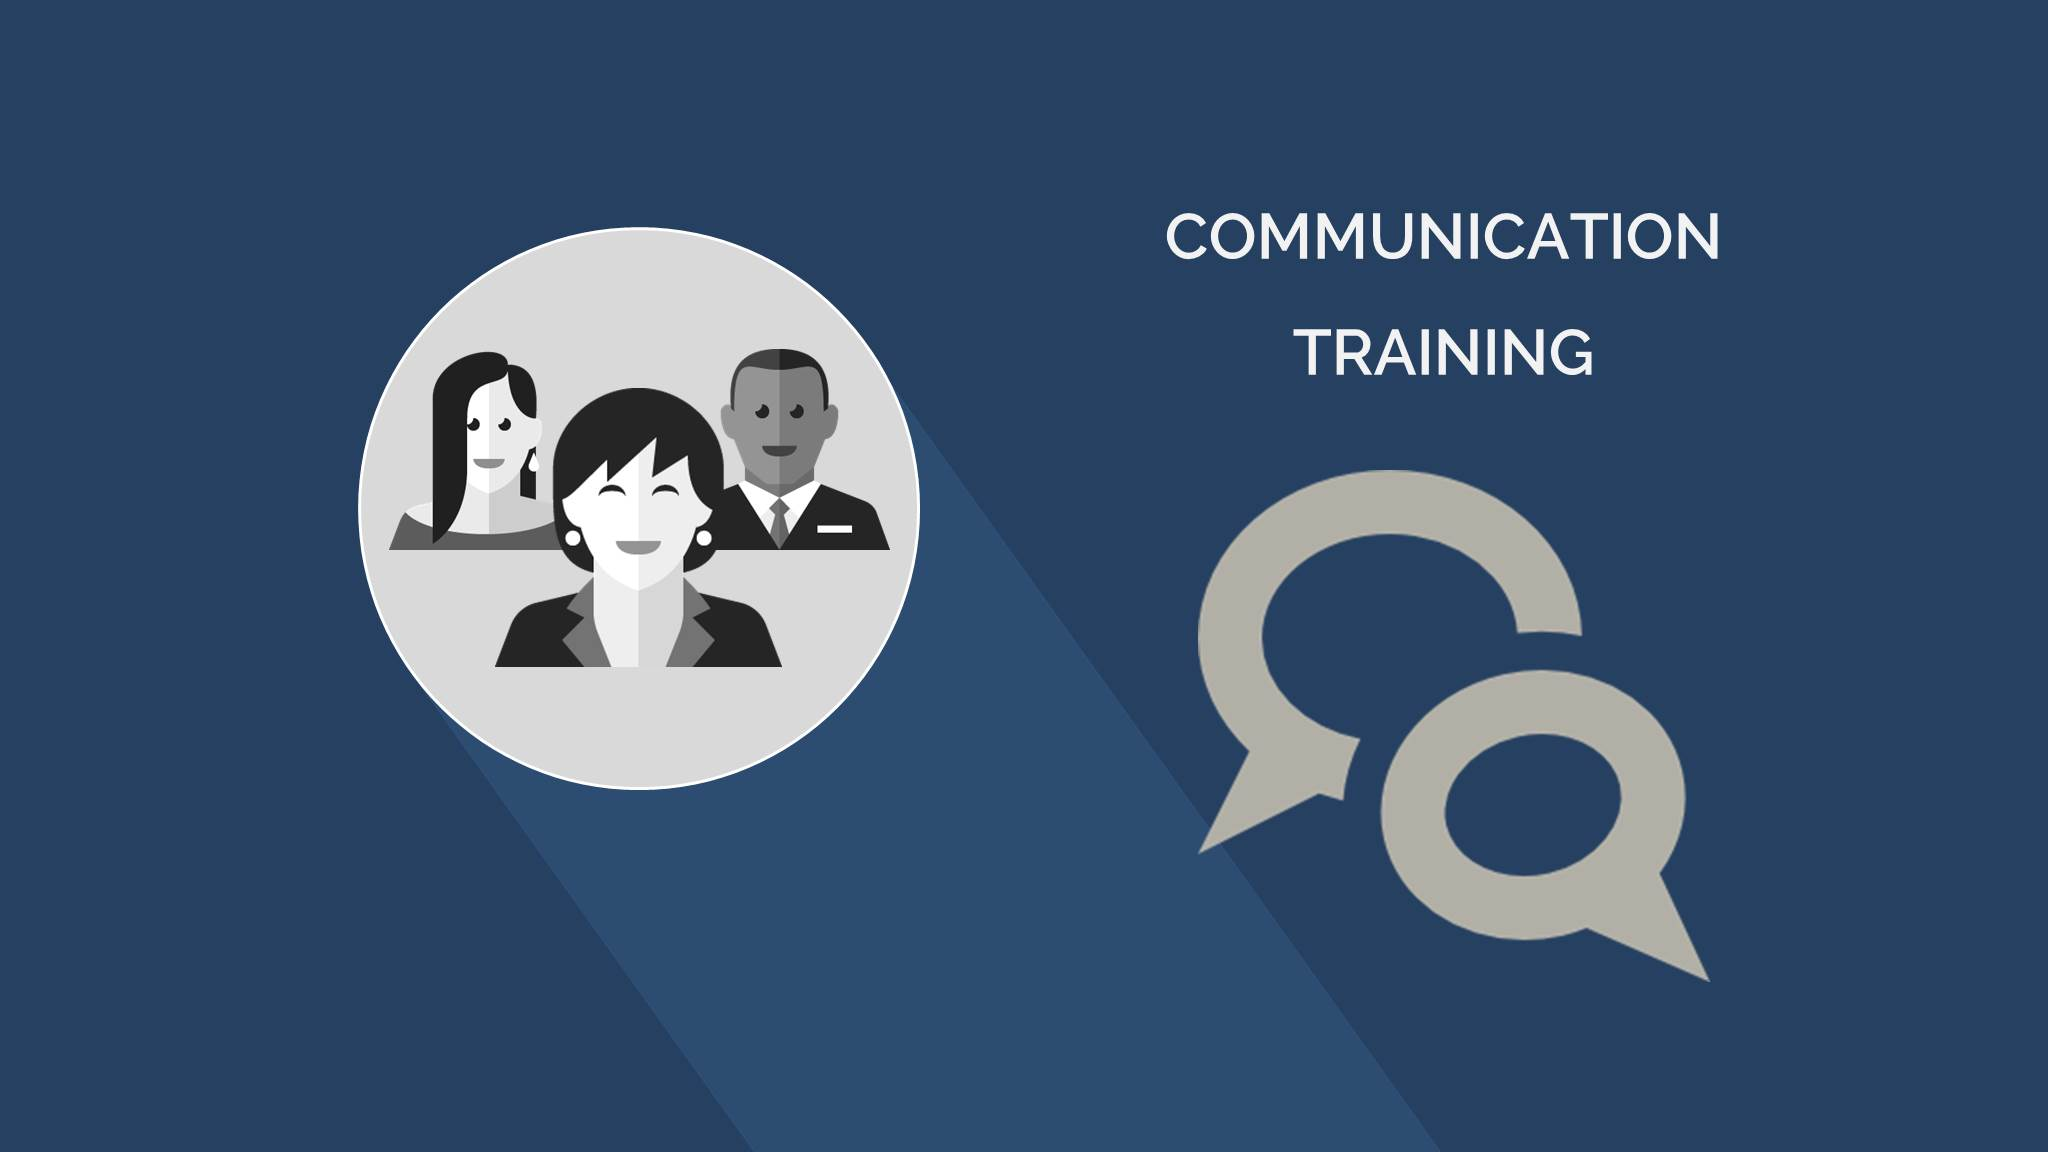 CommunicationTraining